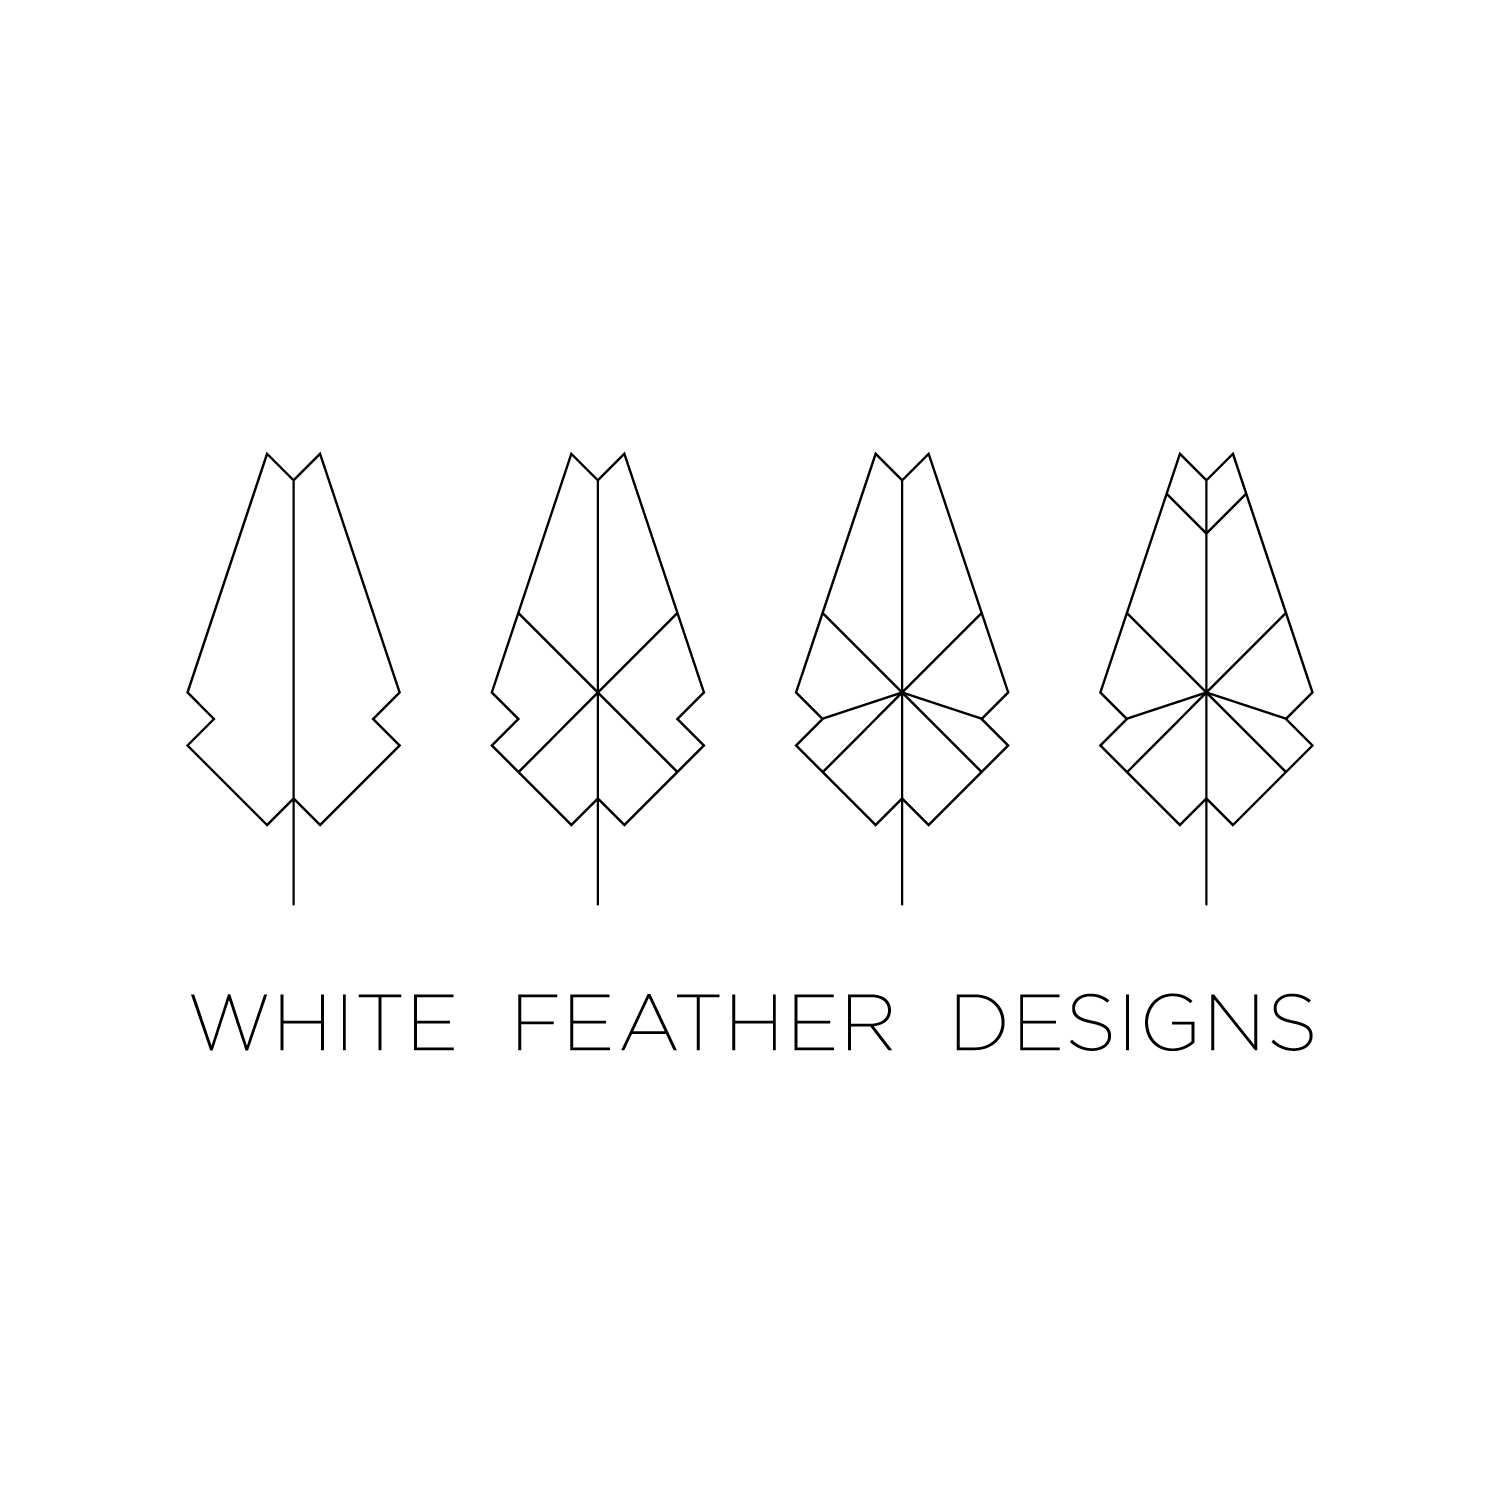 White Feather Designs